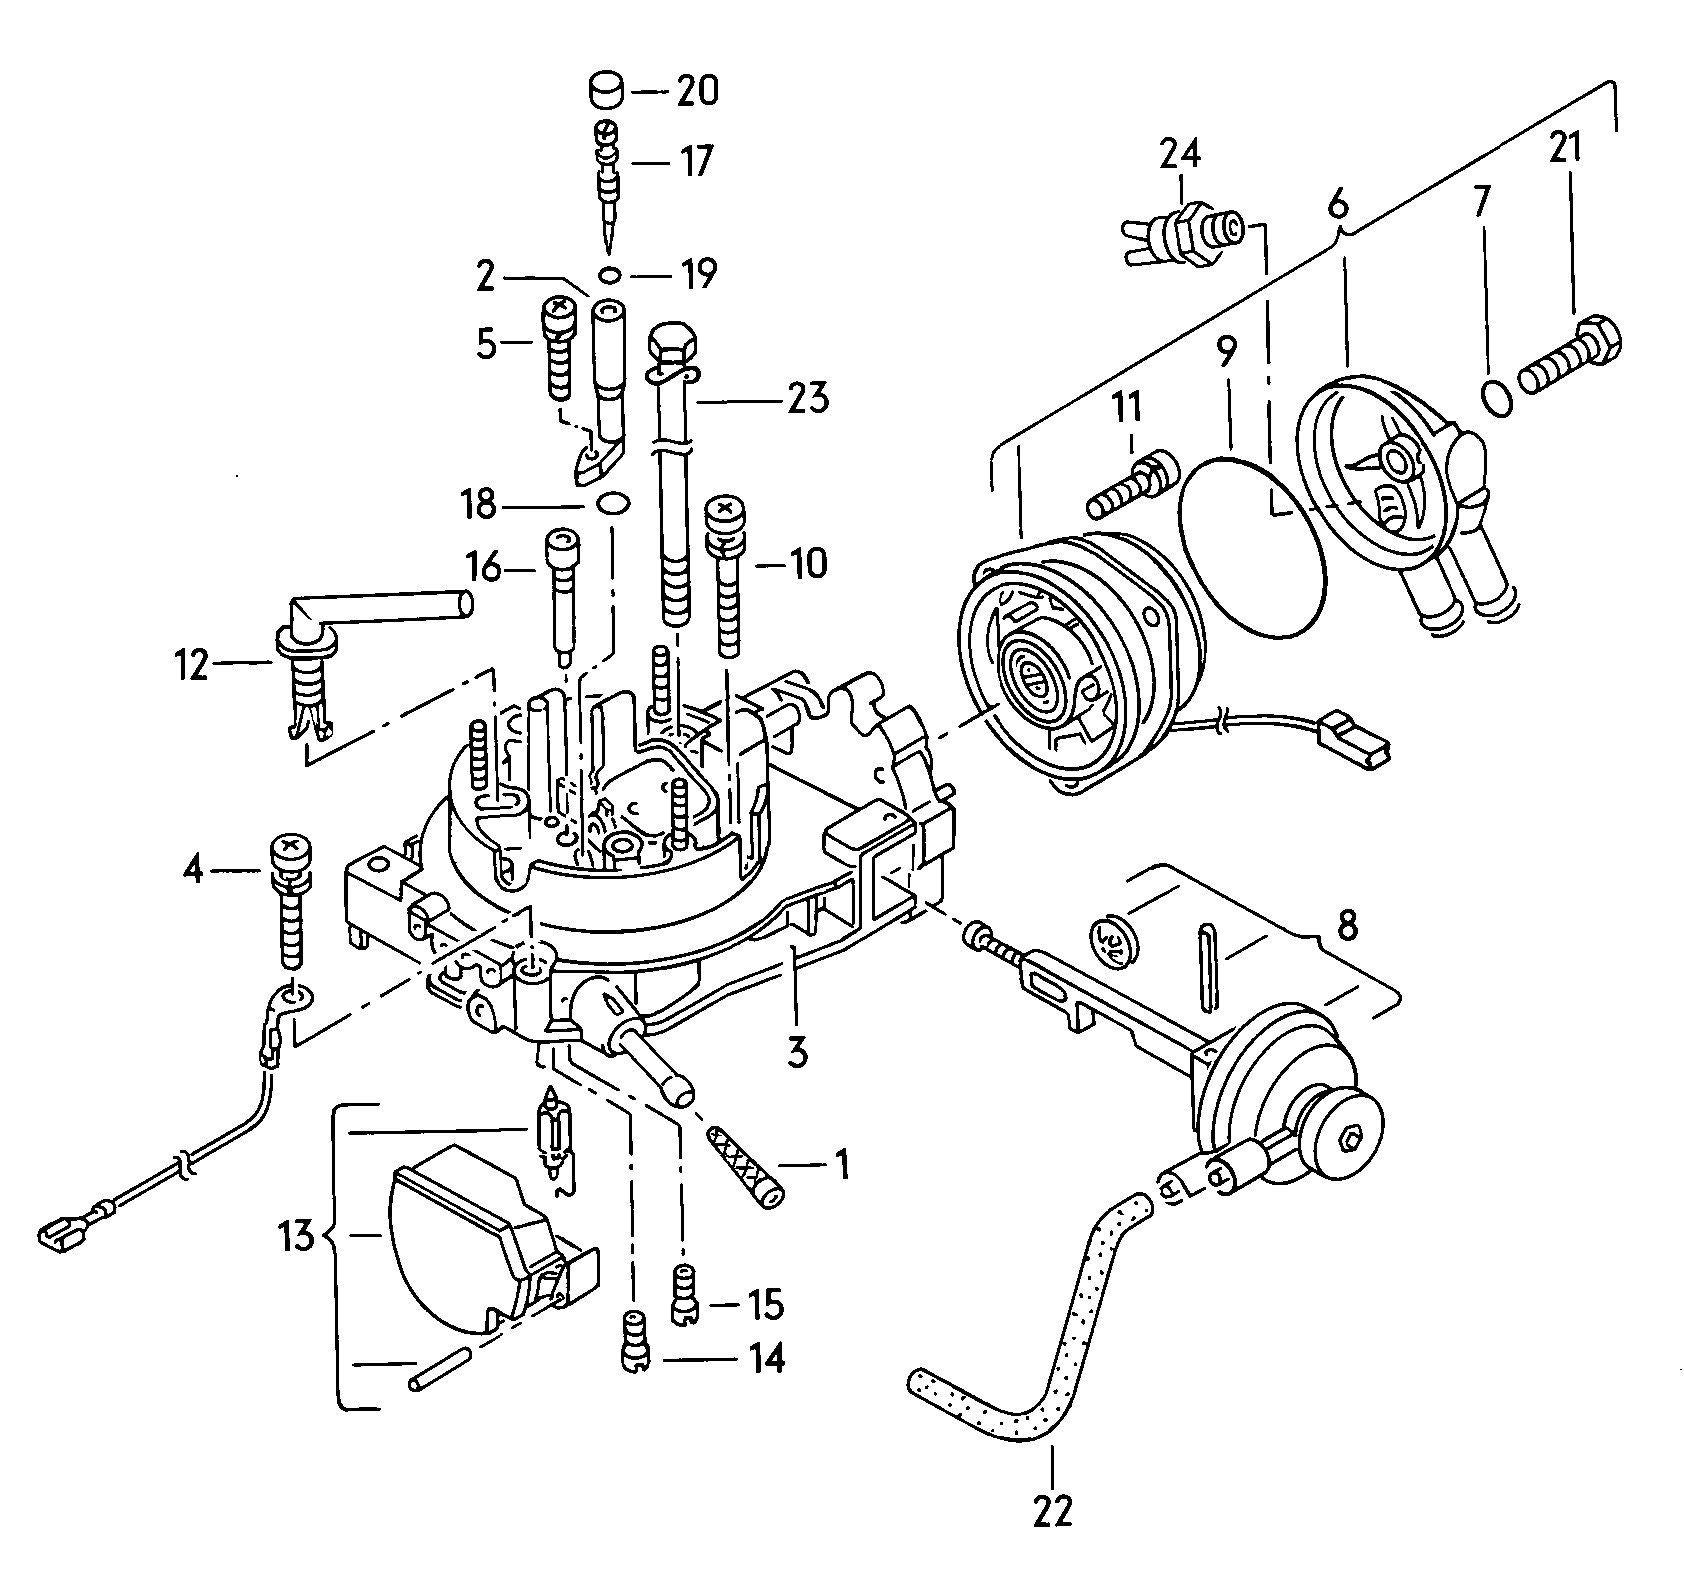 Vw Engine Parts Diagram Line Volkswagen Jetta Syncro Spare